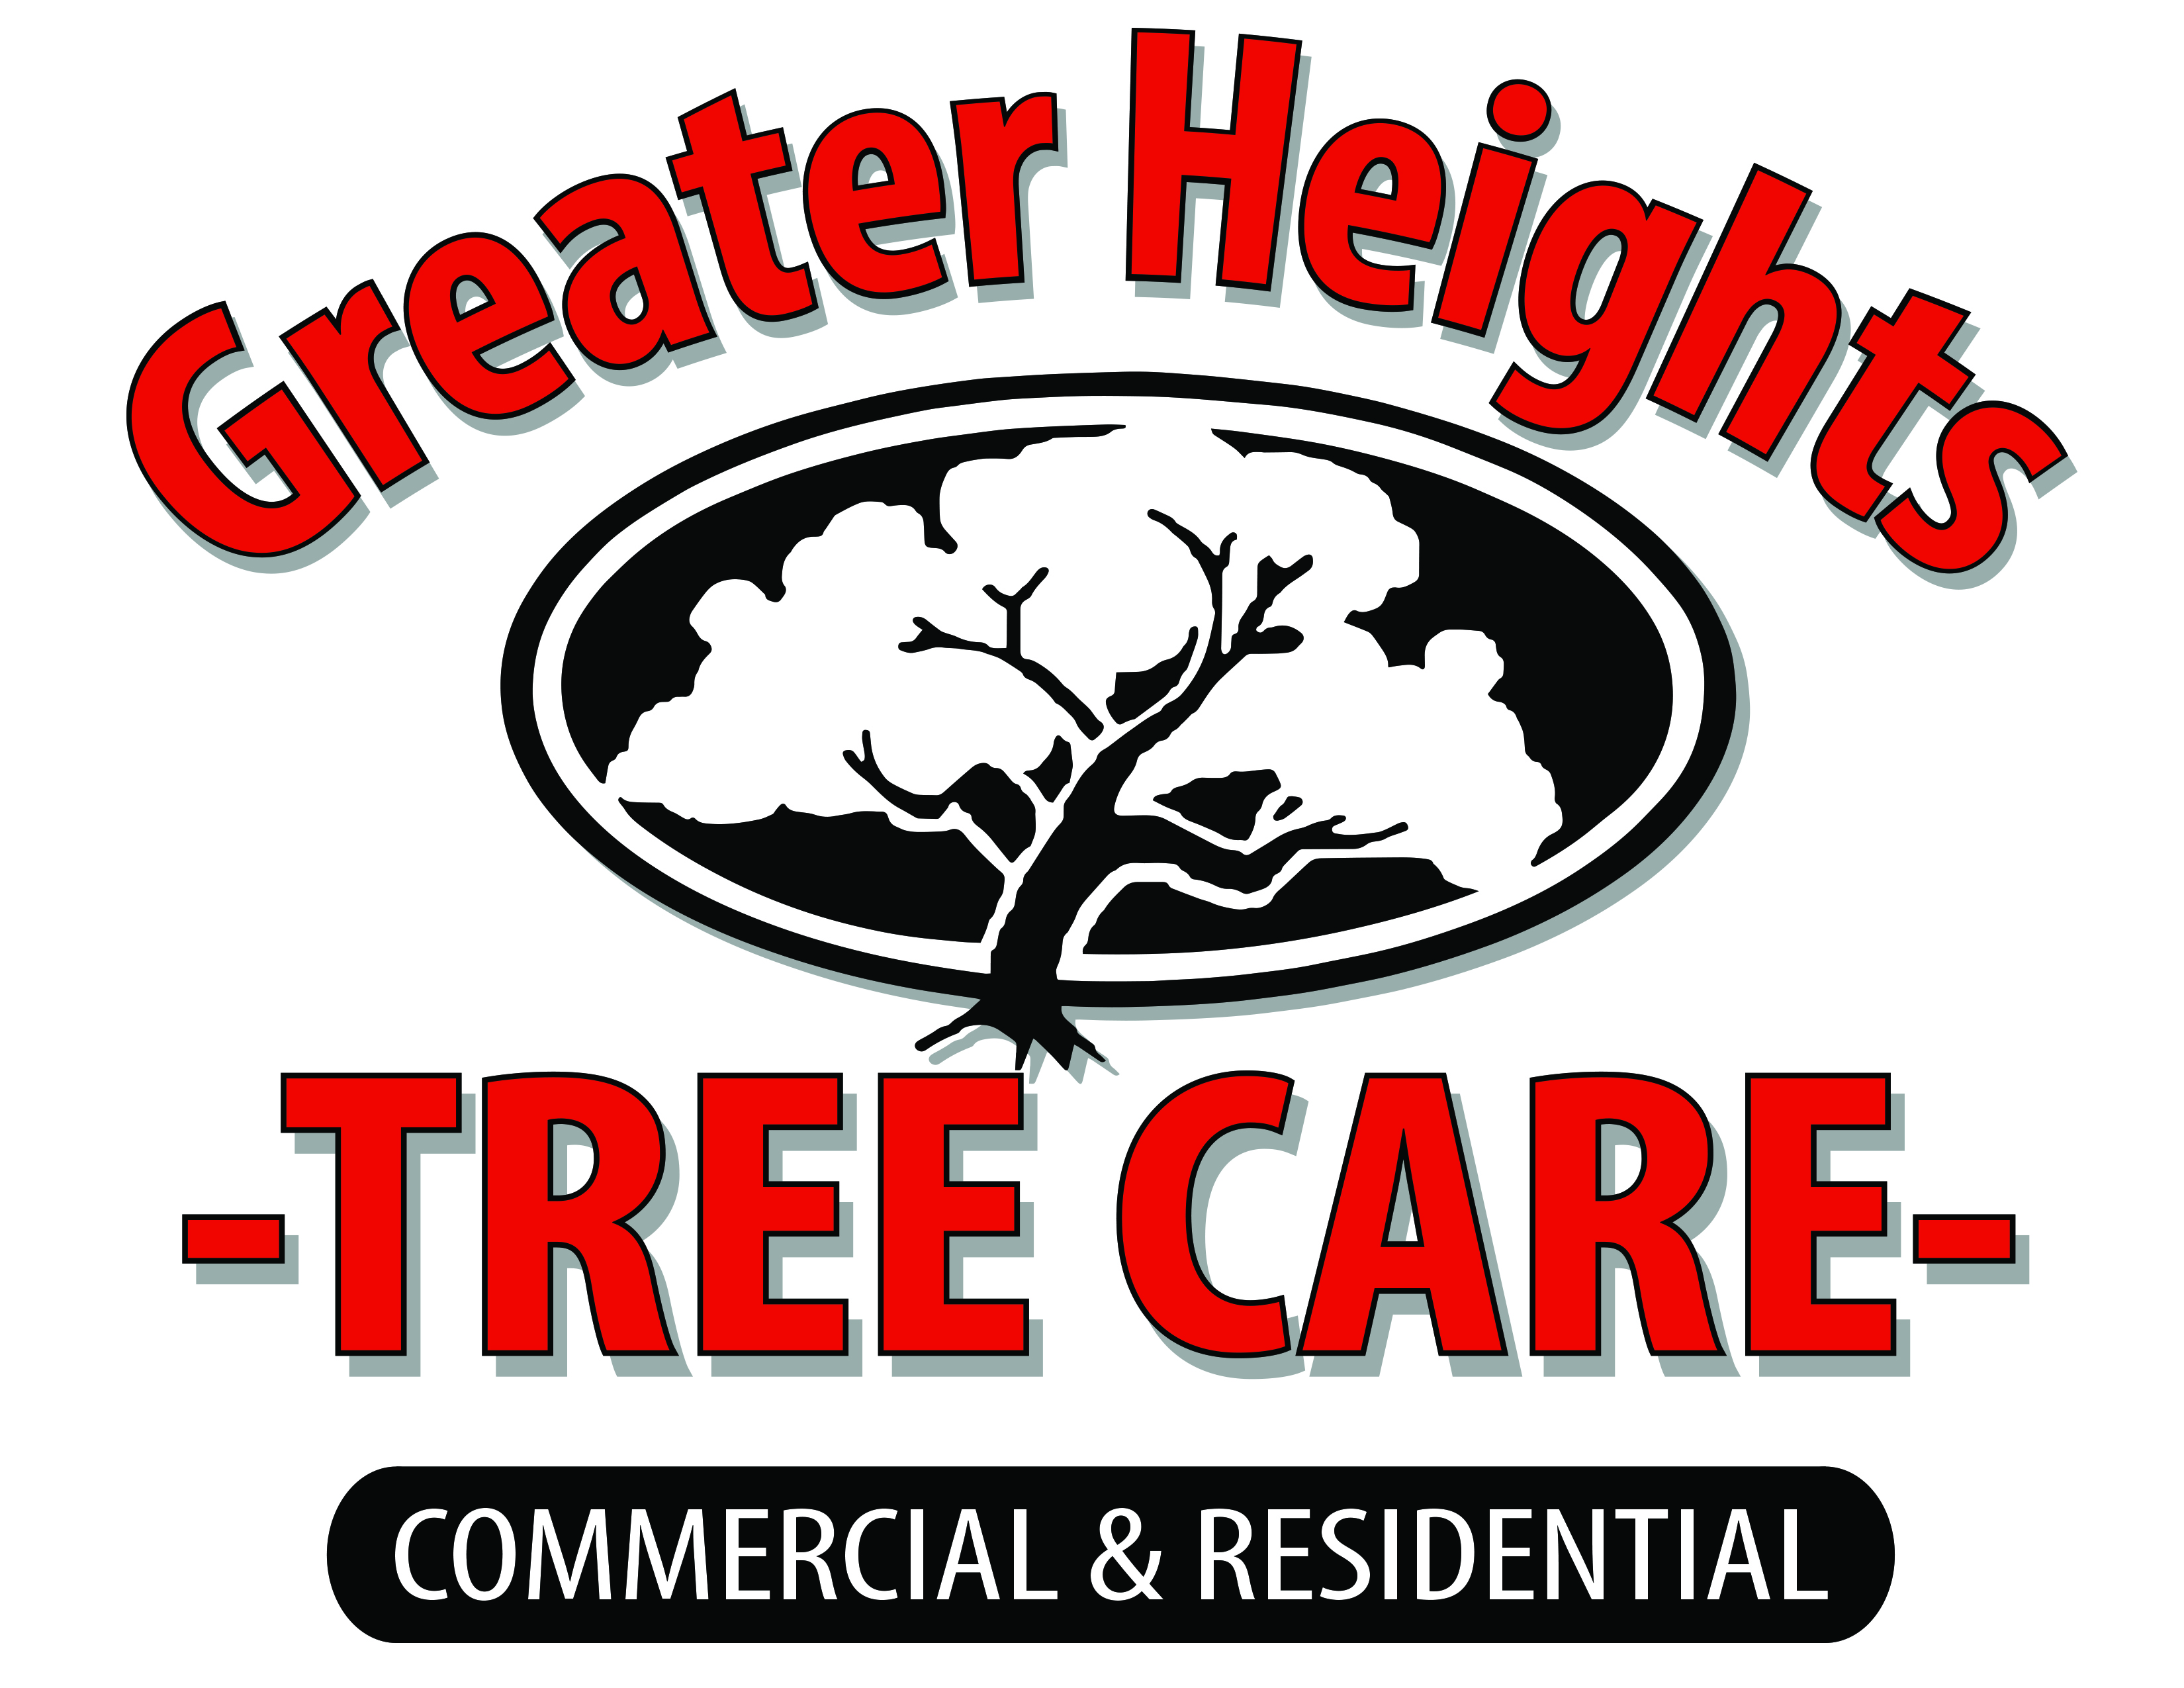 Greater Heights Tree Care LOGO